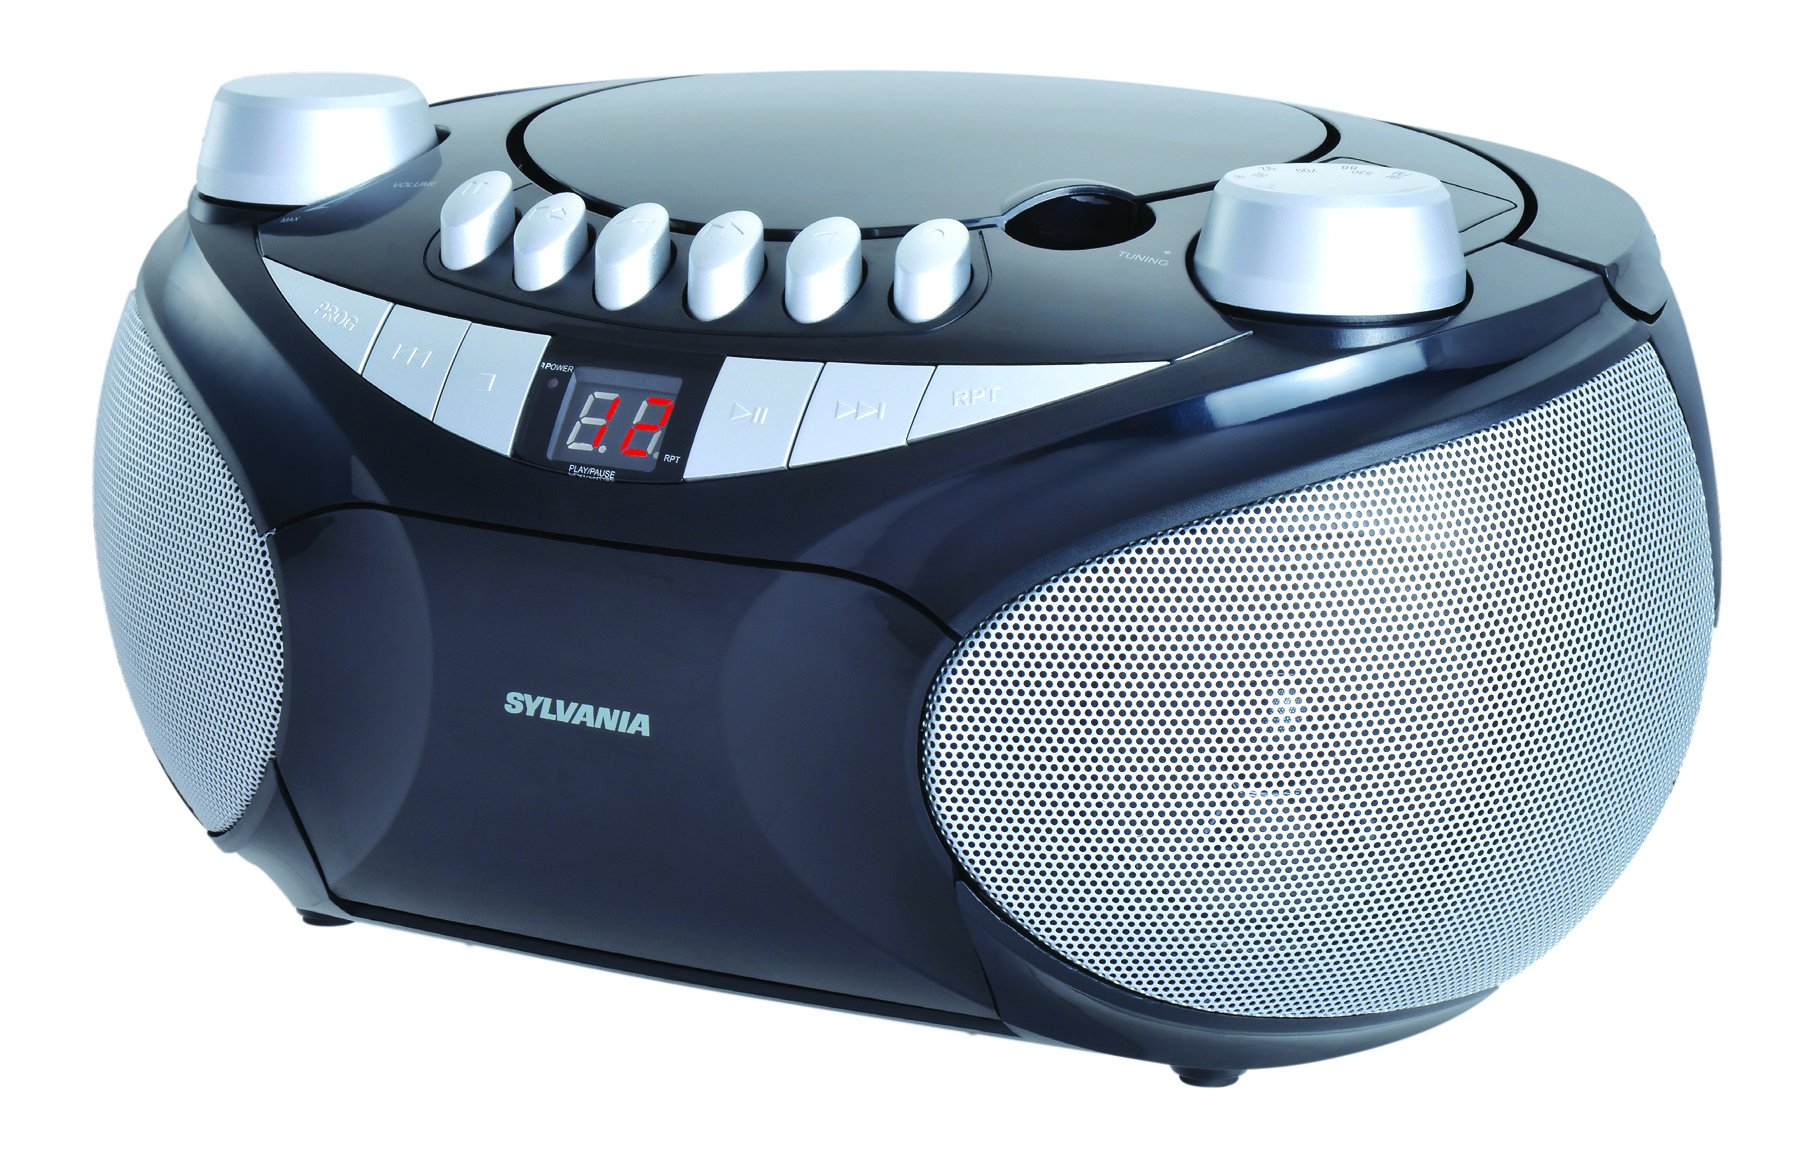 Sylvania Portable Cassette, CD, AM/FM Radio Boombox, with Cassette Player (SRCD286) by SYLVANIA